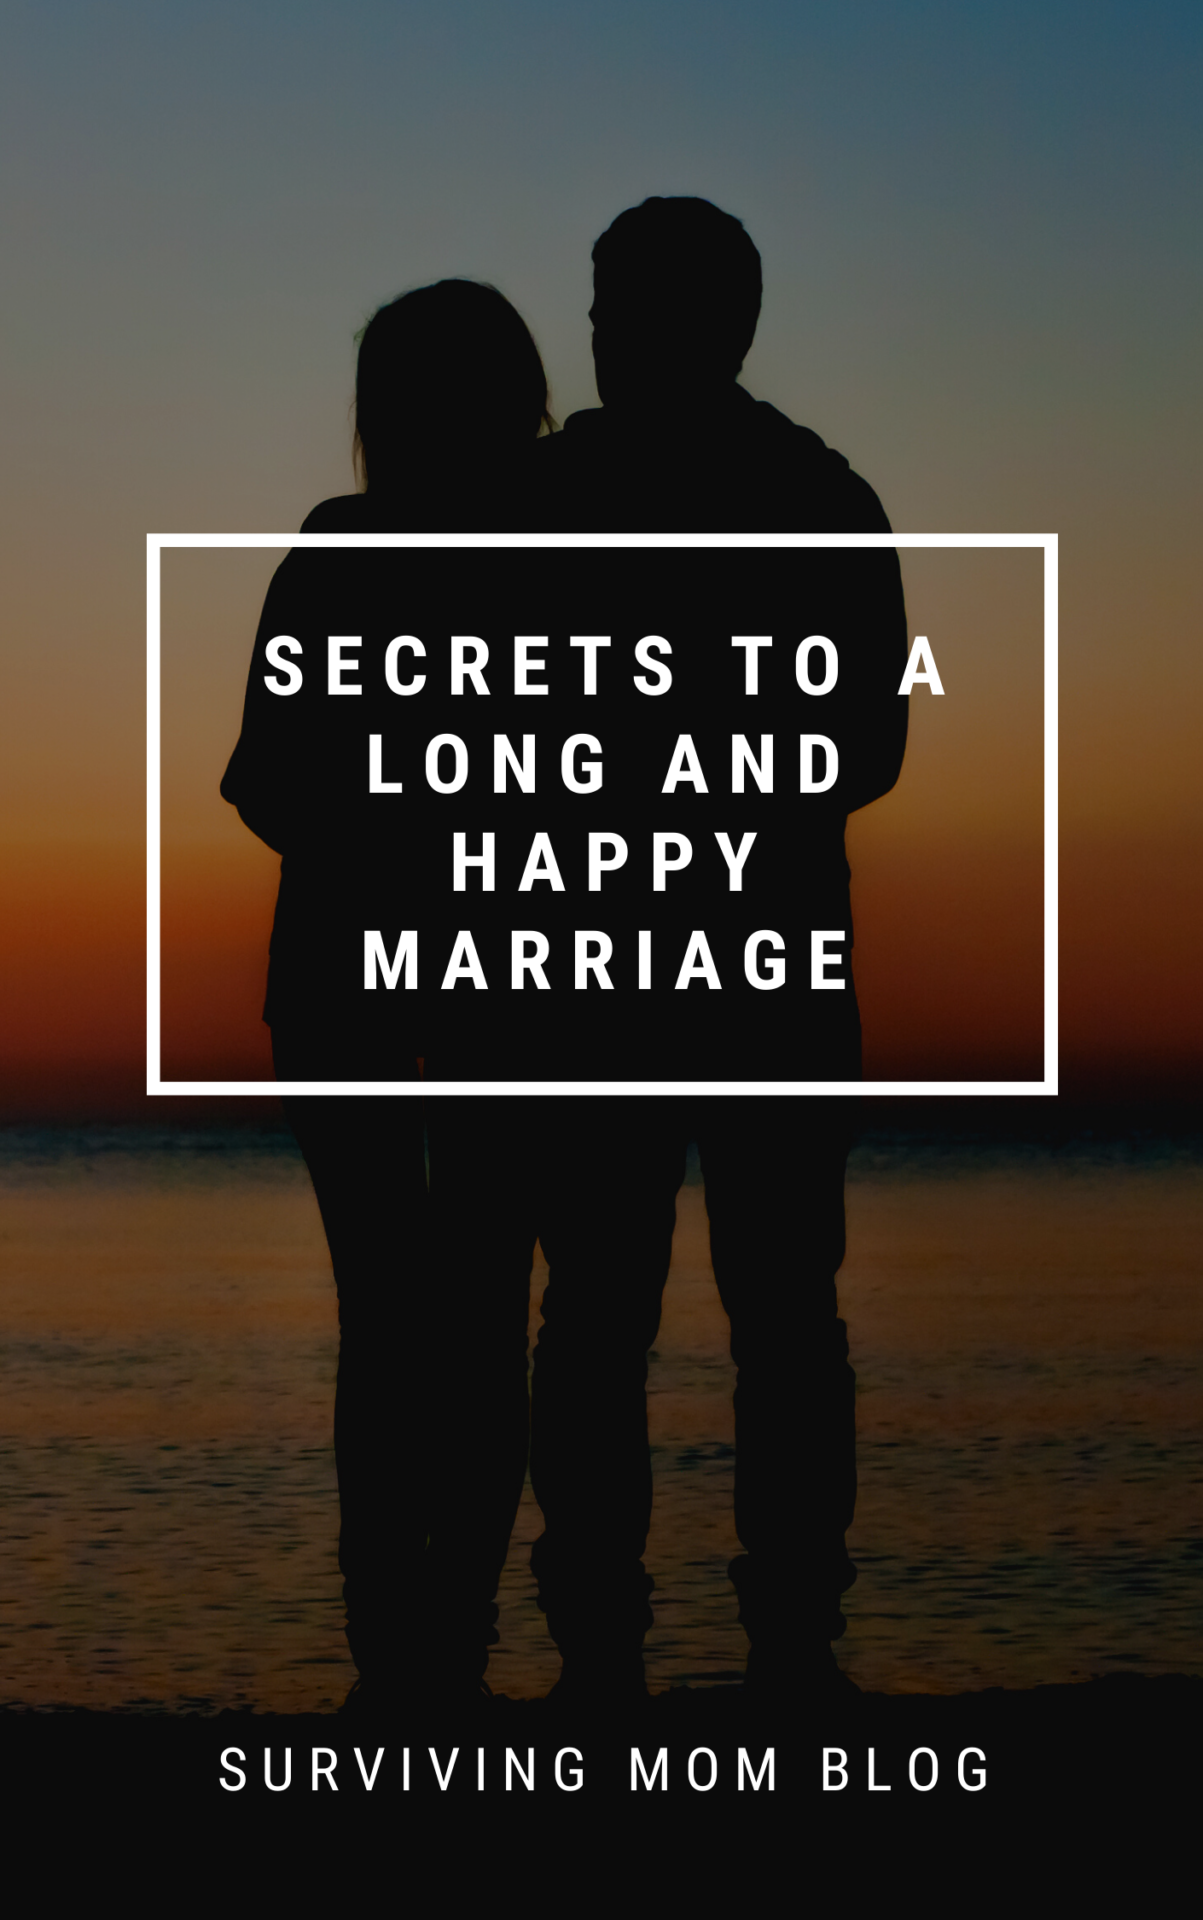 Want a Long and Happy Marriage? Here are 8 Tips & Secrets for Lasting Love